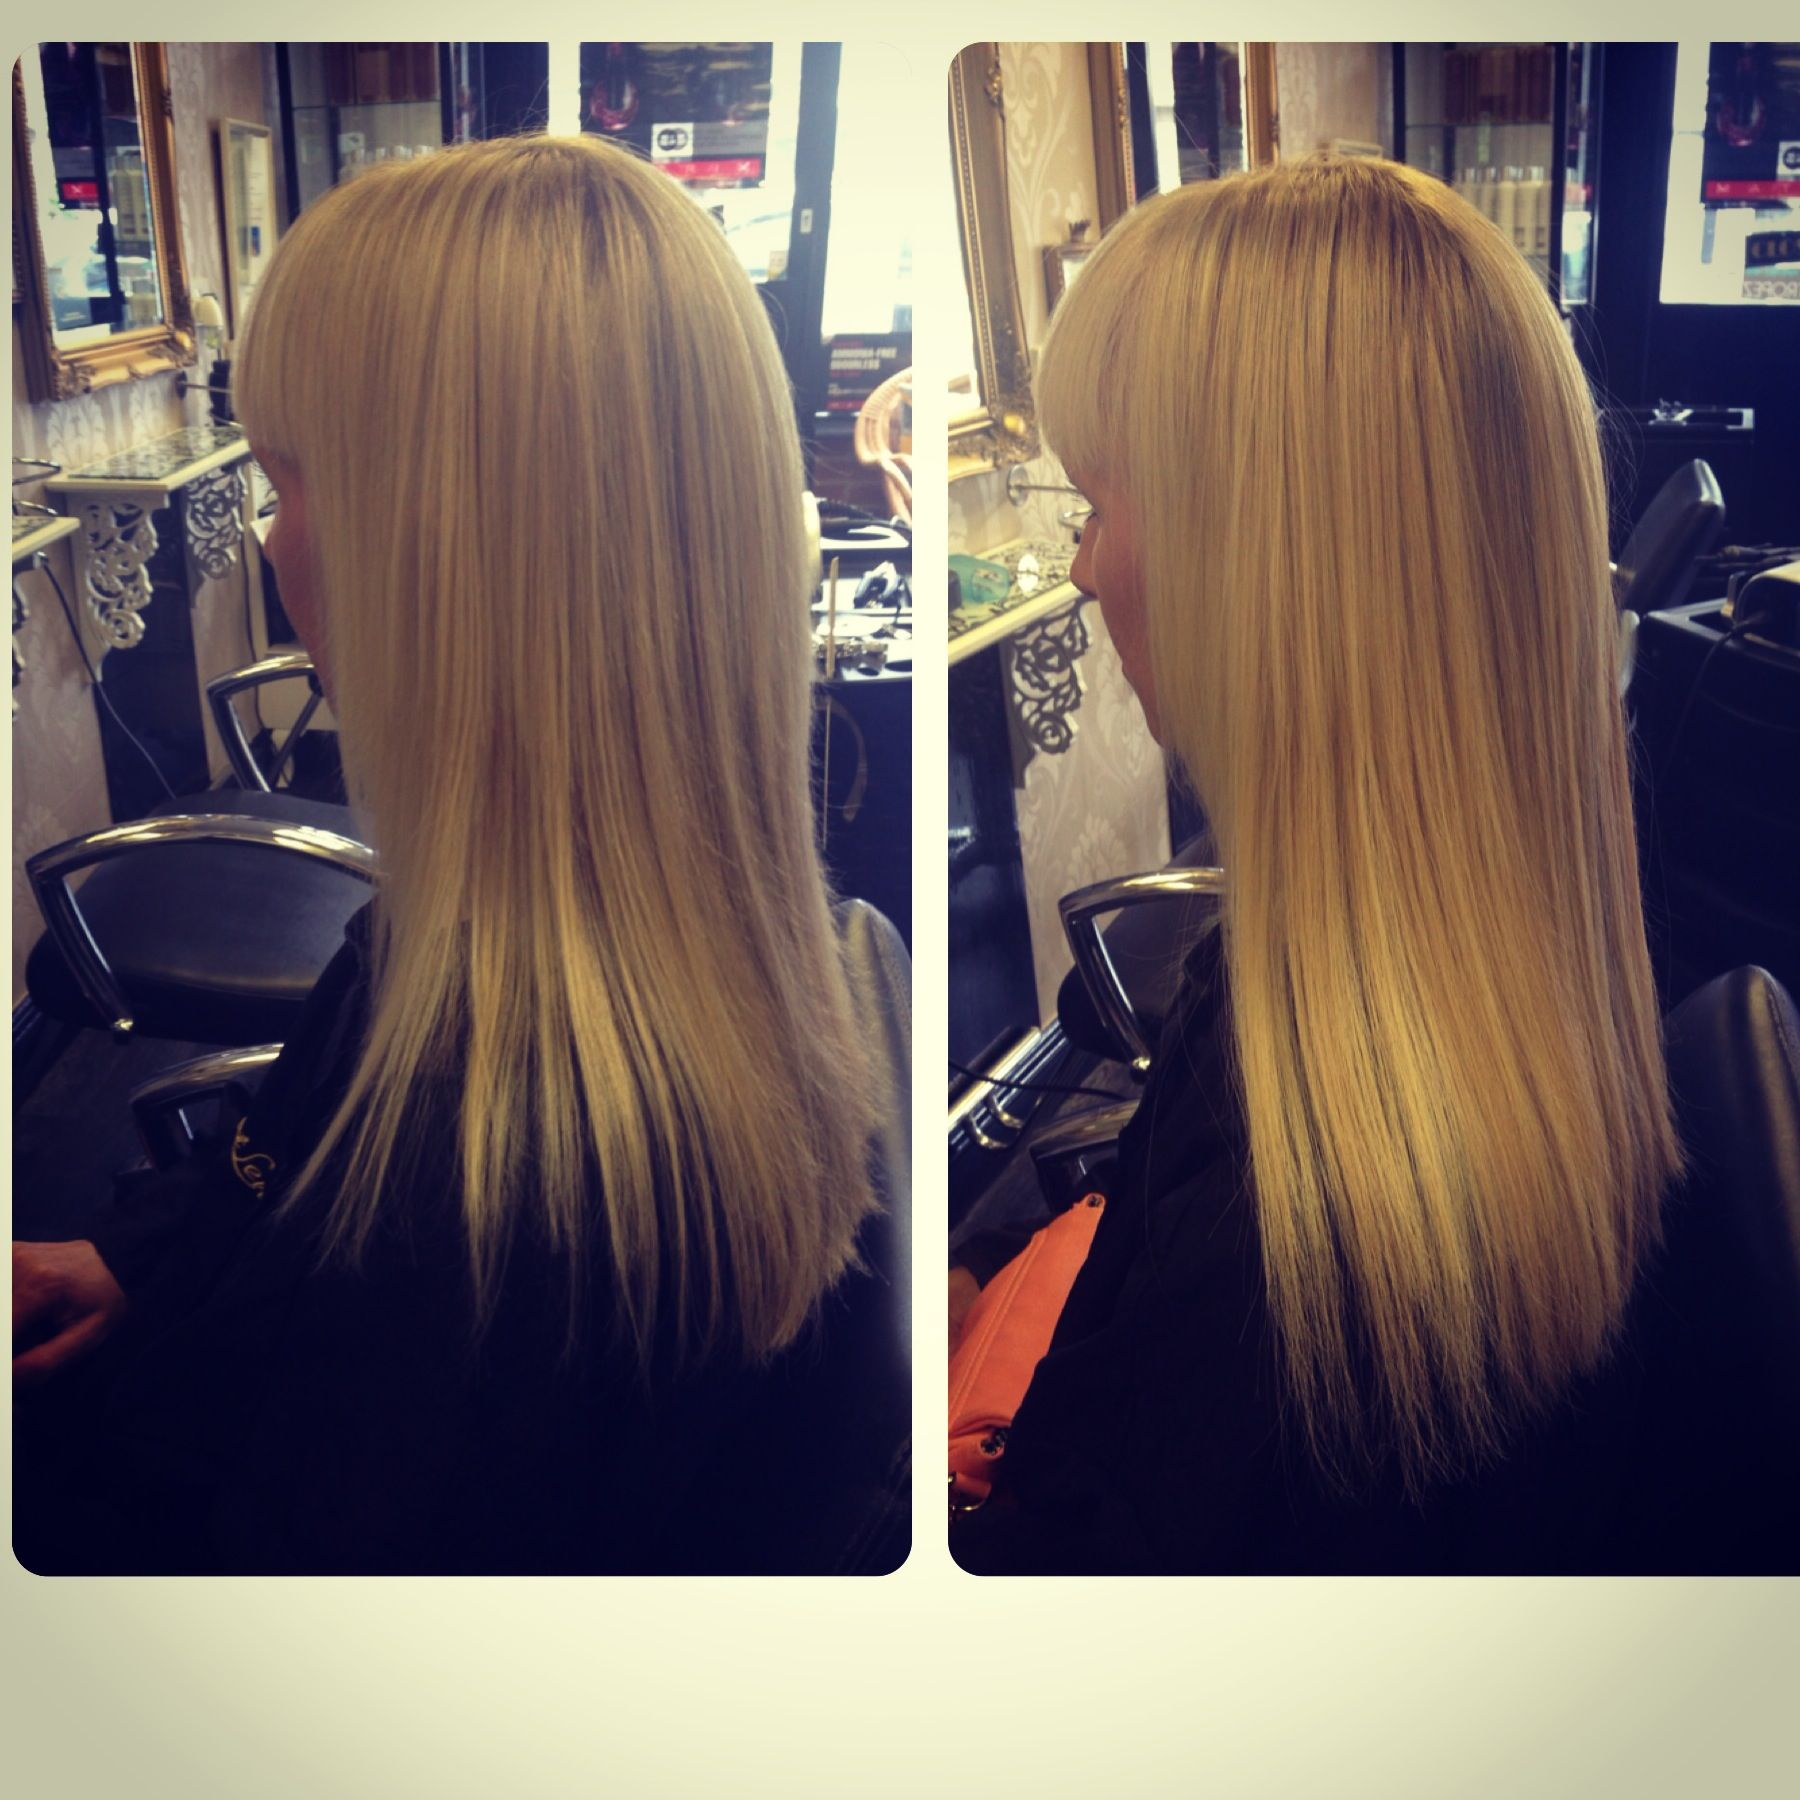 12inch Great Lengths Extensions Added To Fill In Sides Of Clients